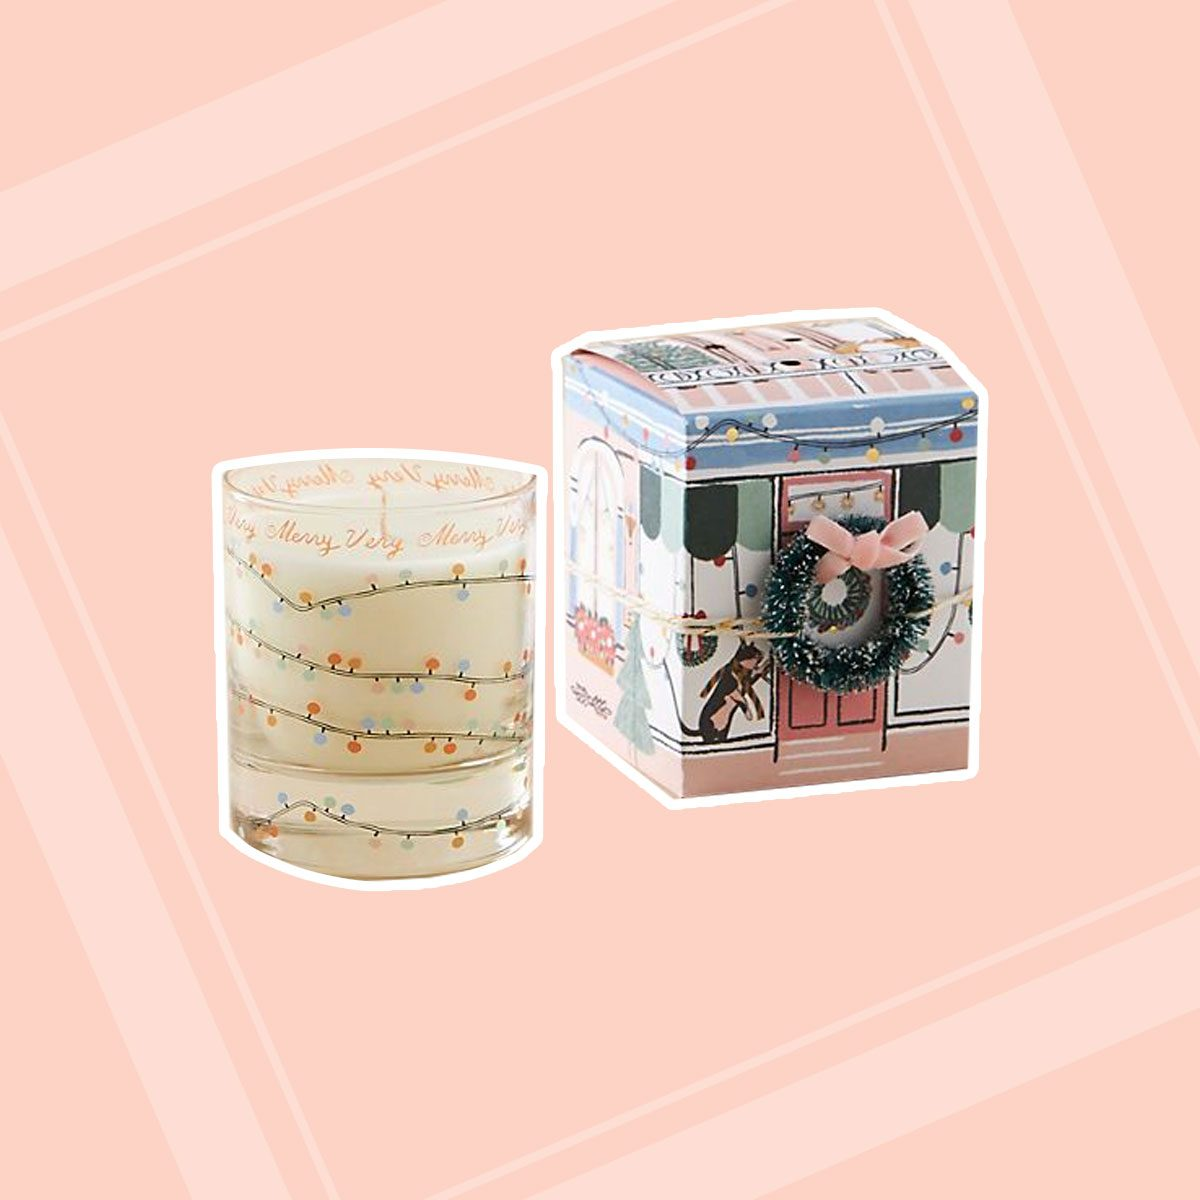 George & Viv Holiday Village Boxed Candle